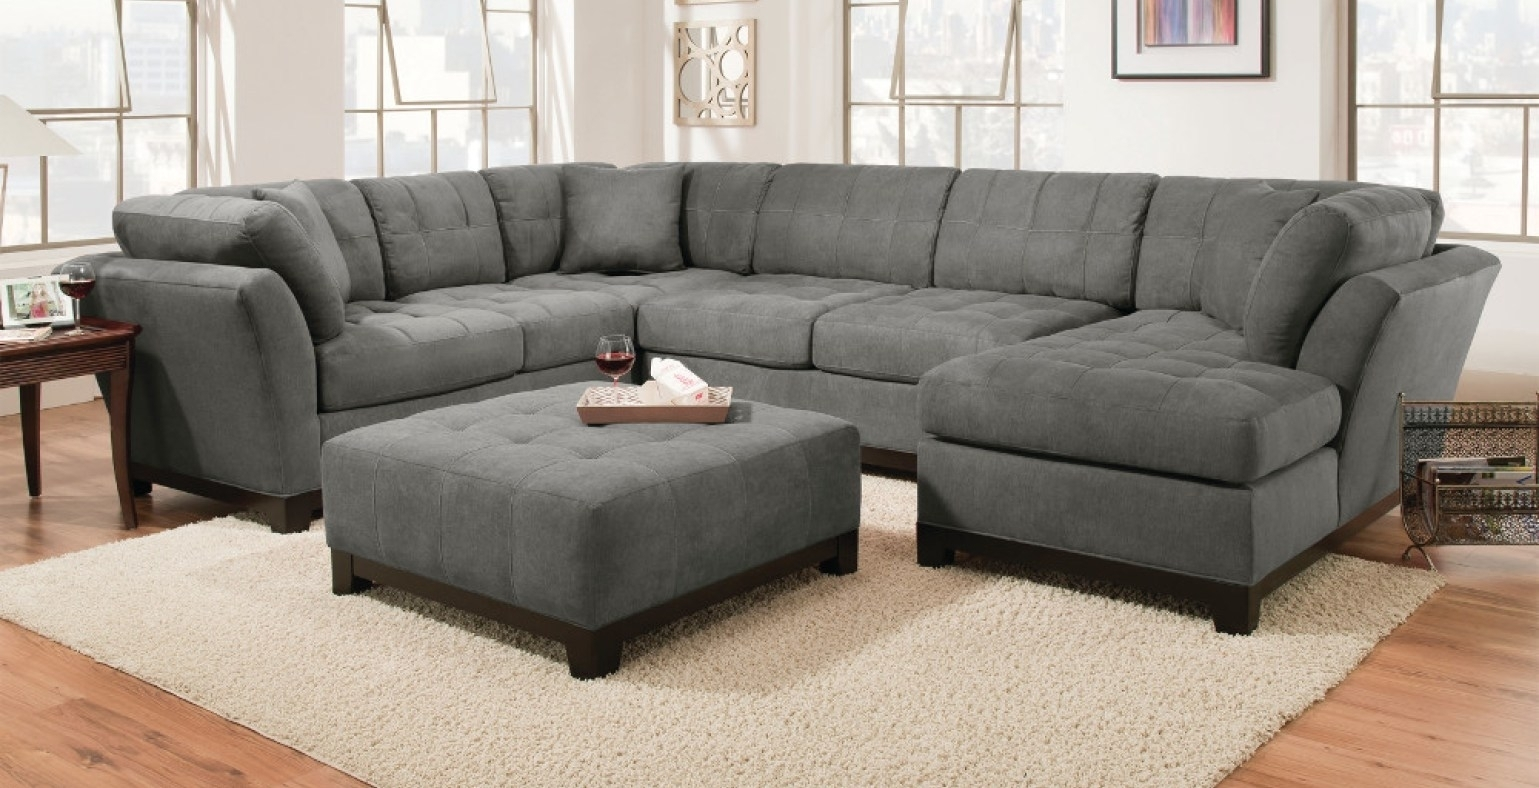 Gallery Austin Sectional Sofa – Mediasupload Throughout Sectional Sofas At Austin (View 4 of 15)